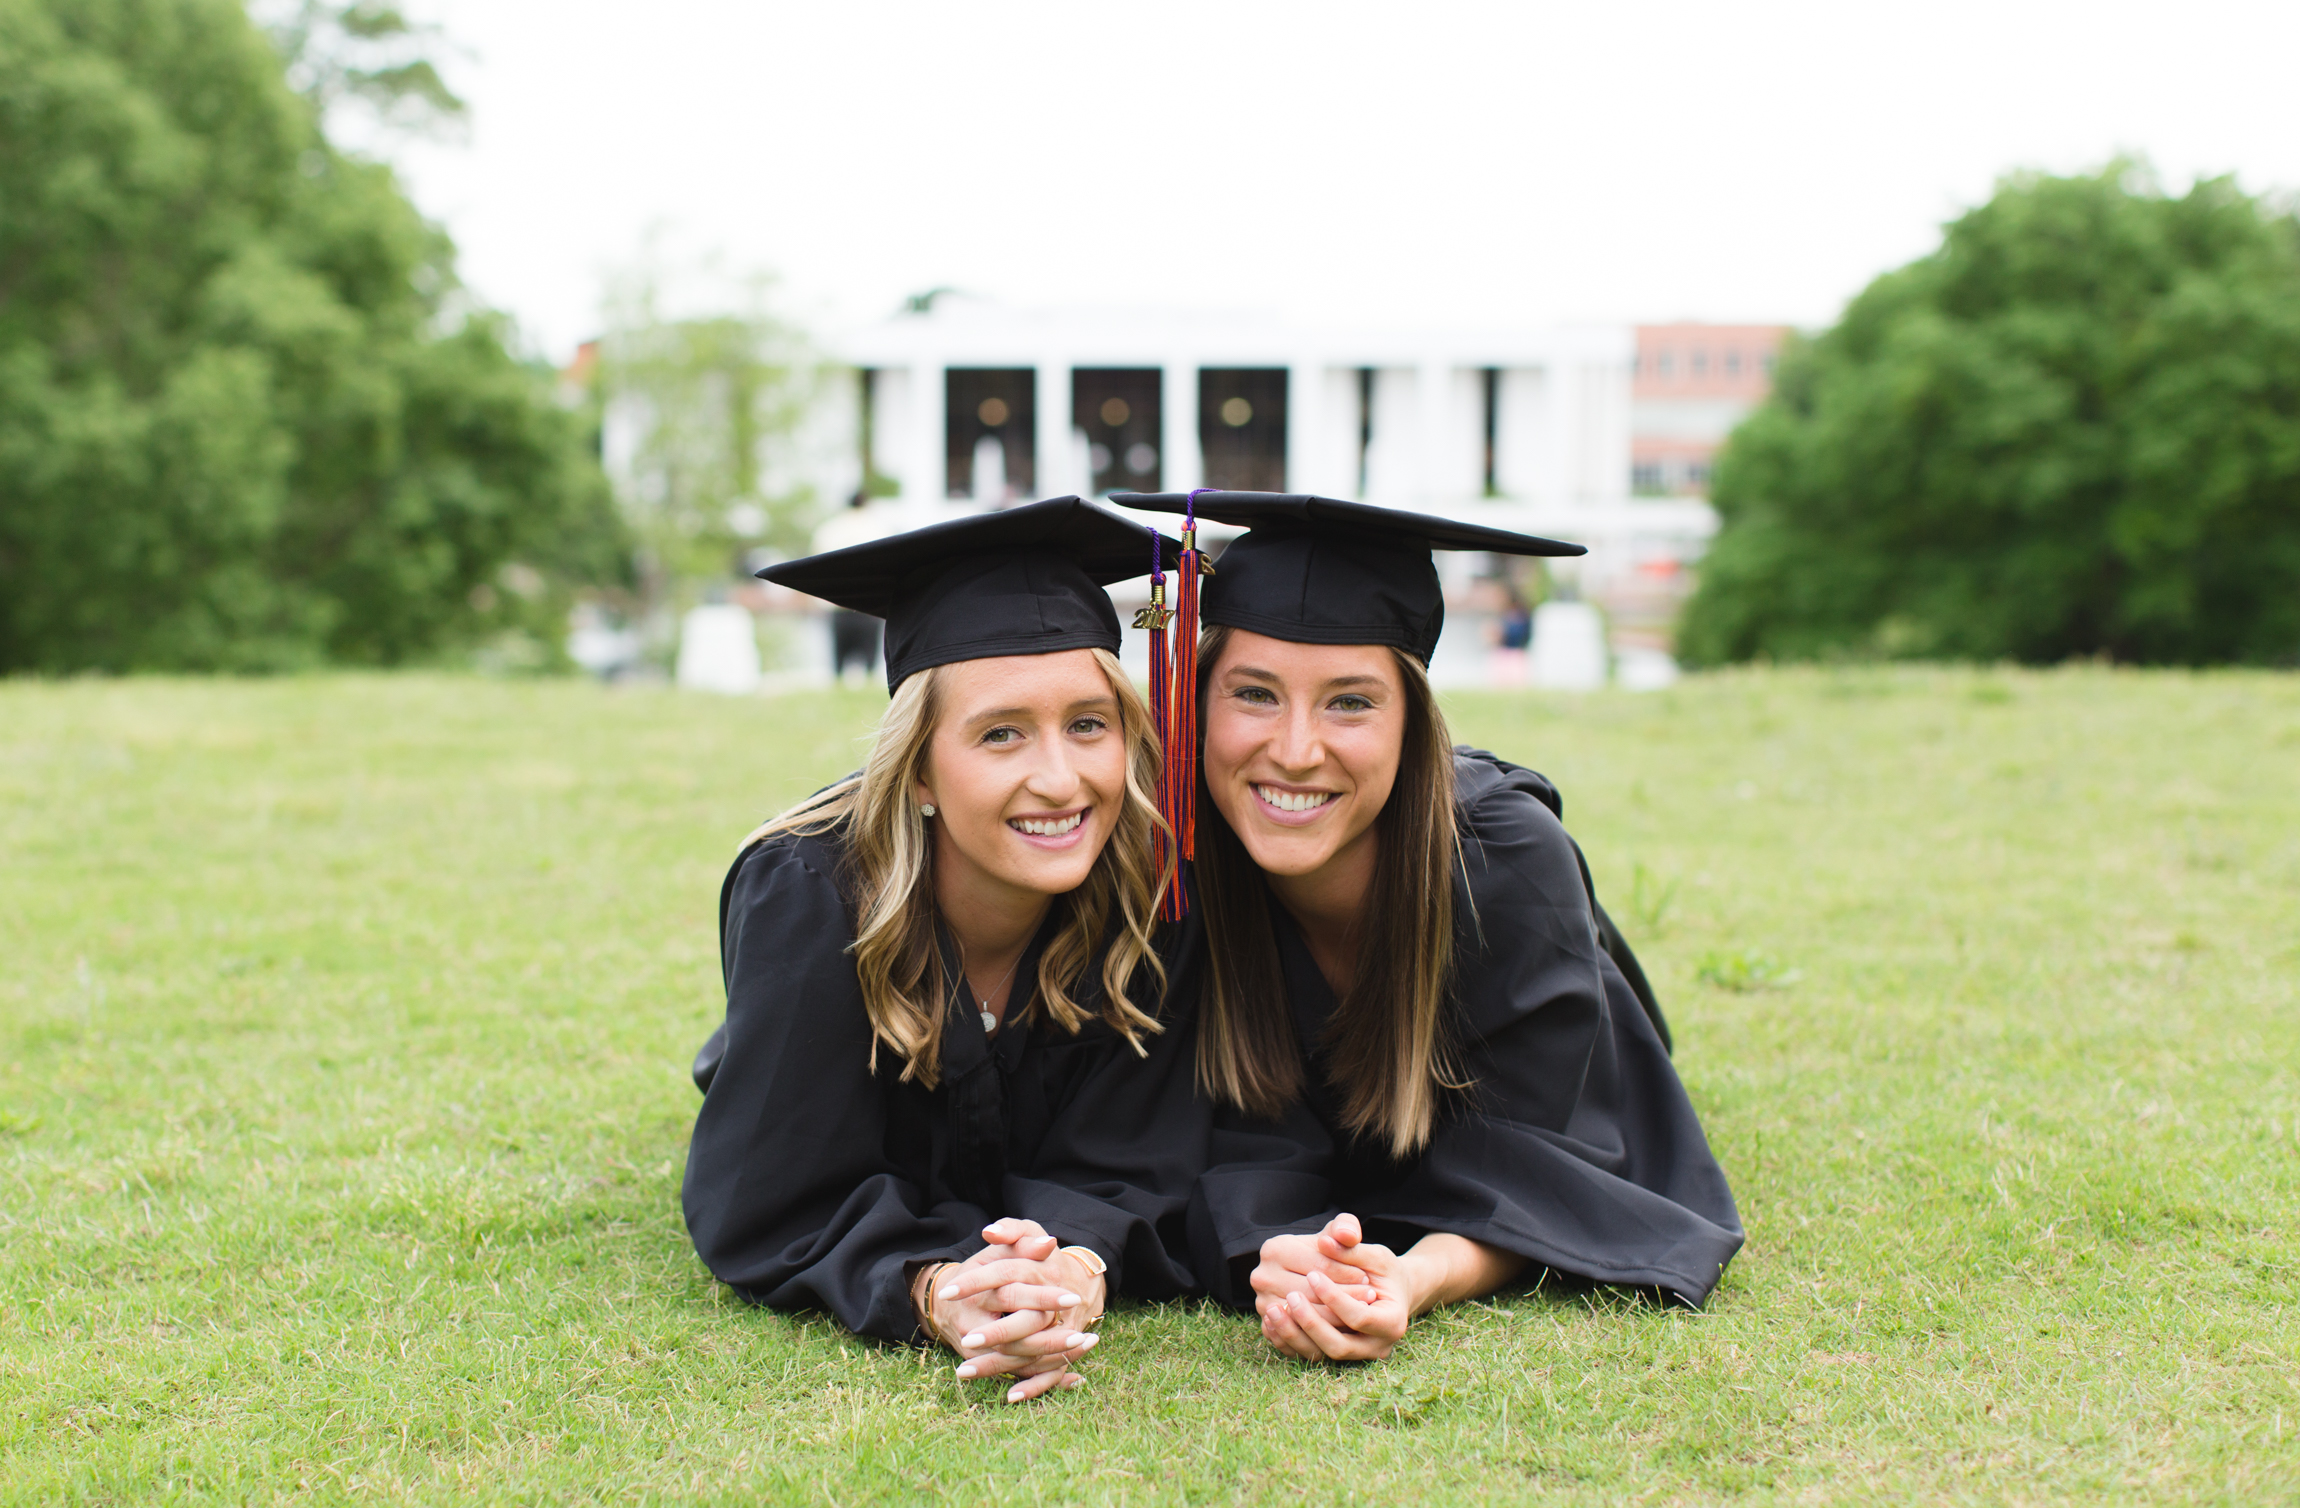 Clemson University senior photos 2017-1327.jpg